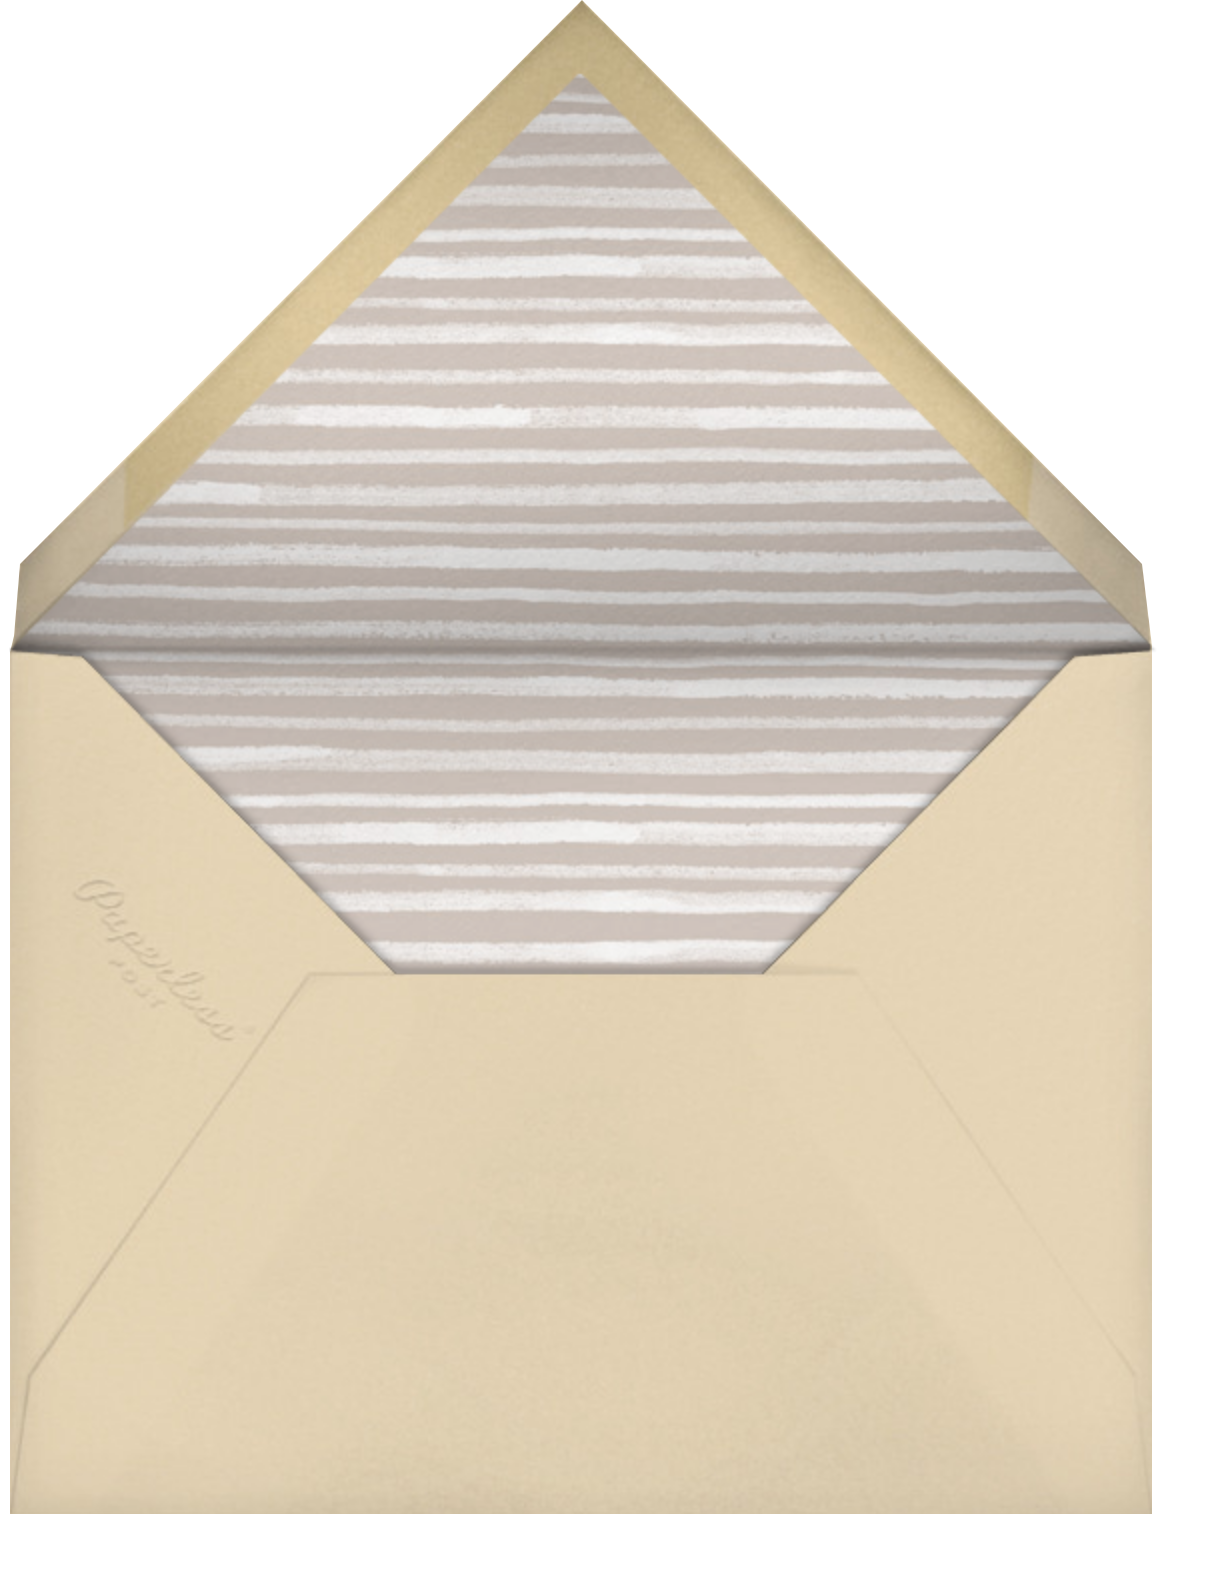 The Works - Paperless Post - Barbecue - envelope back